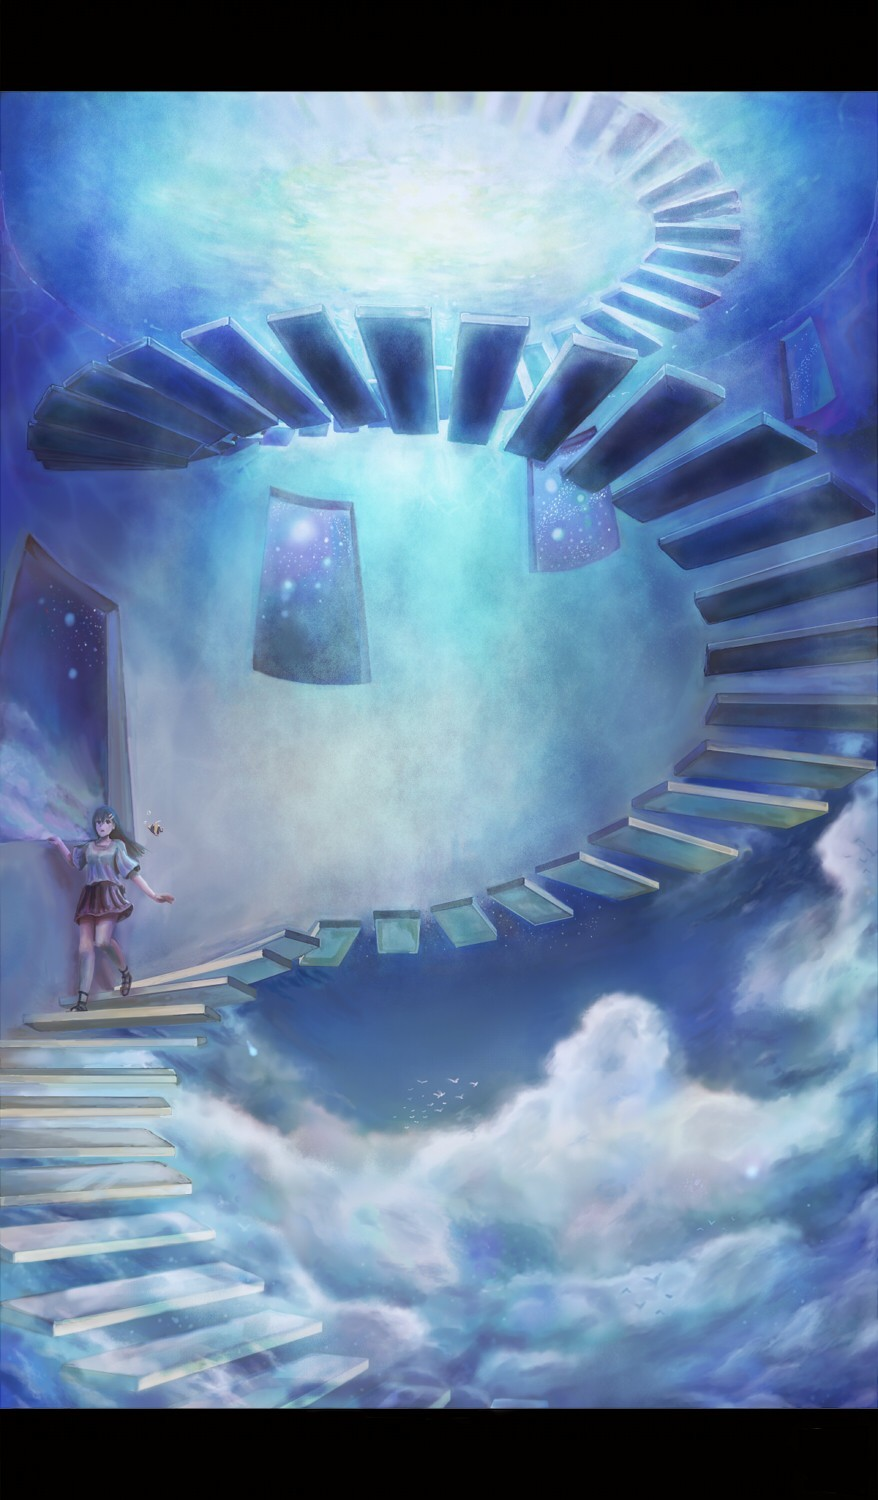 clouds stairways fantasy art HD Wallpaper